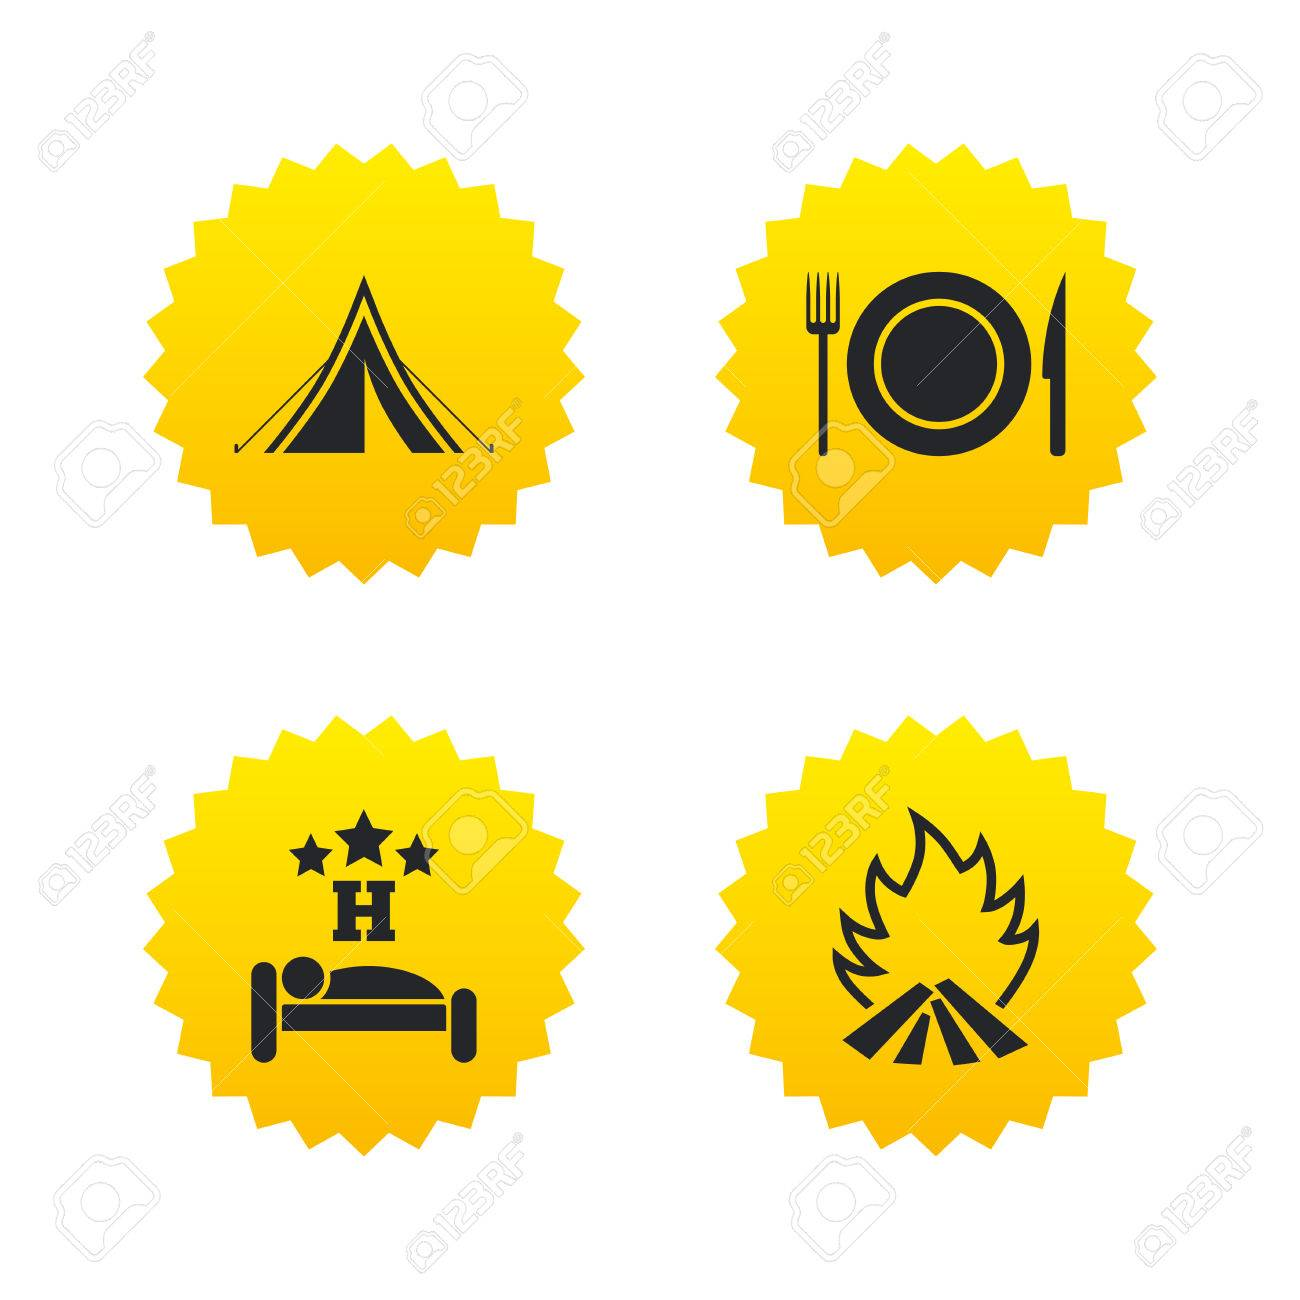 Food sleep c&ing tent and fire icons. Knife fork and dish.  sc 1 st  123RF.com & Food Sleep Camping Tent And Fire Icons. Knife Fork And Dish ...